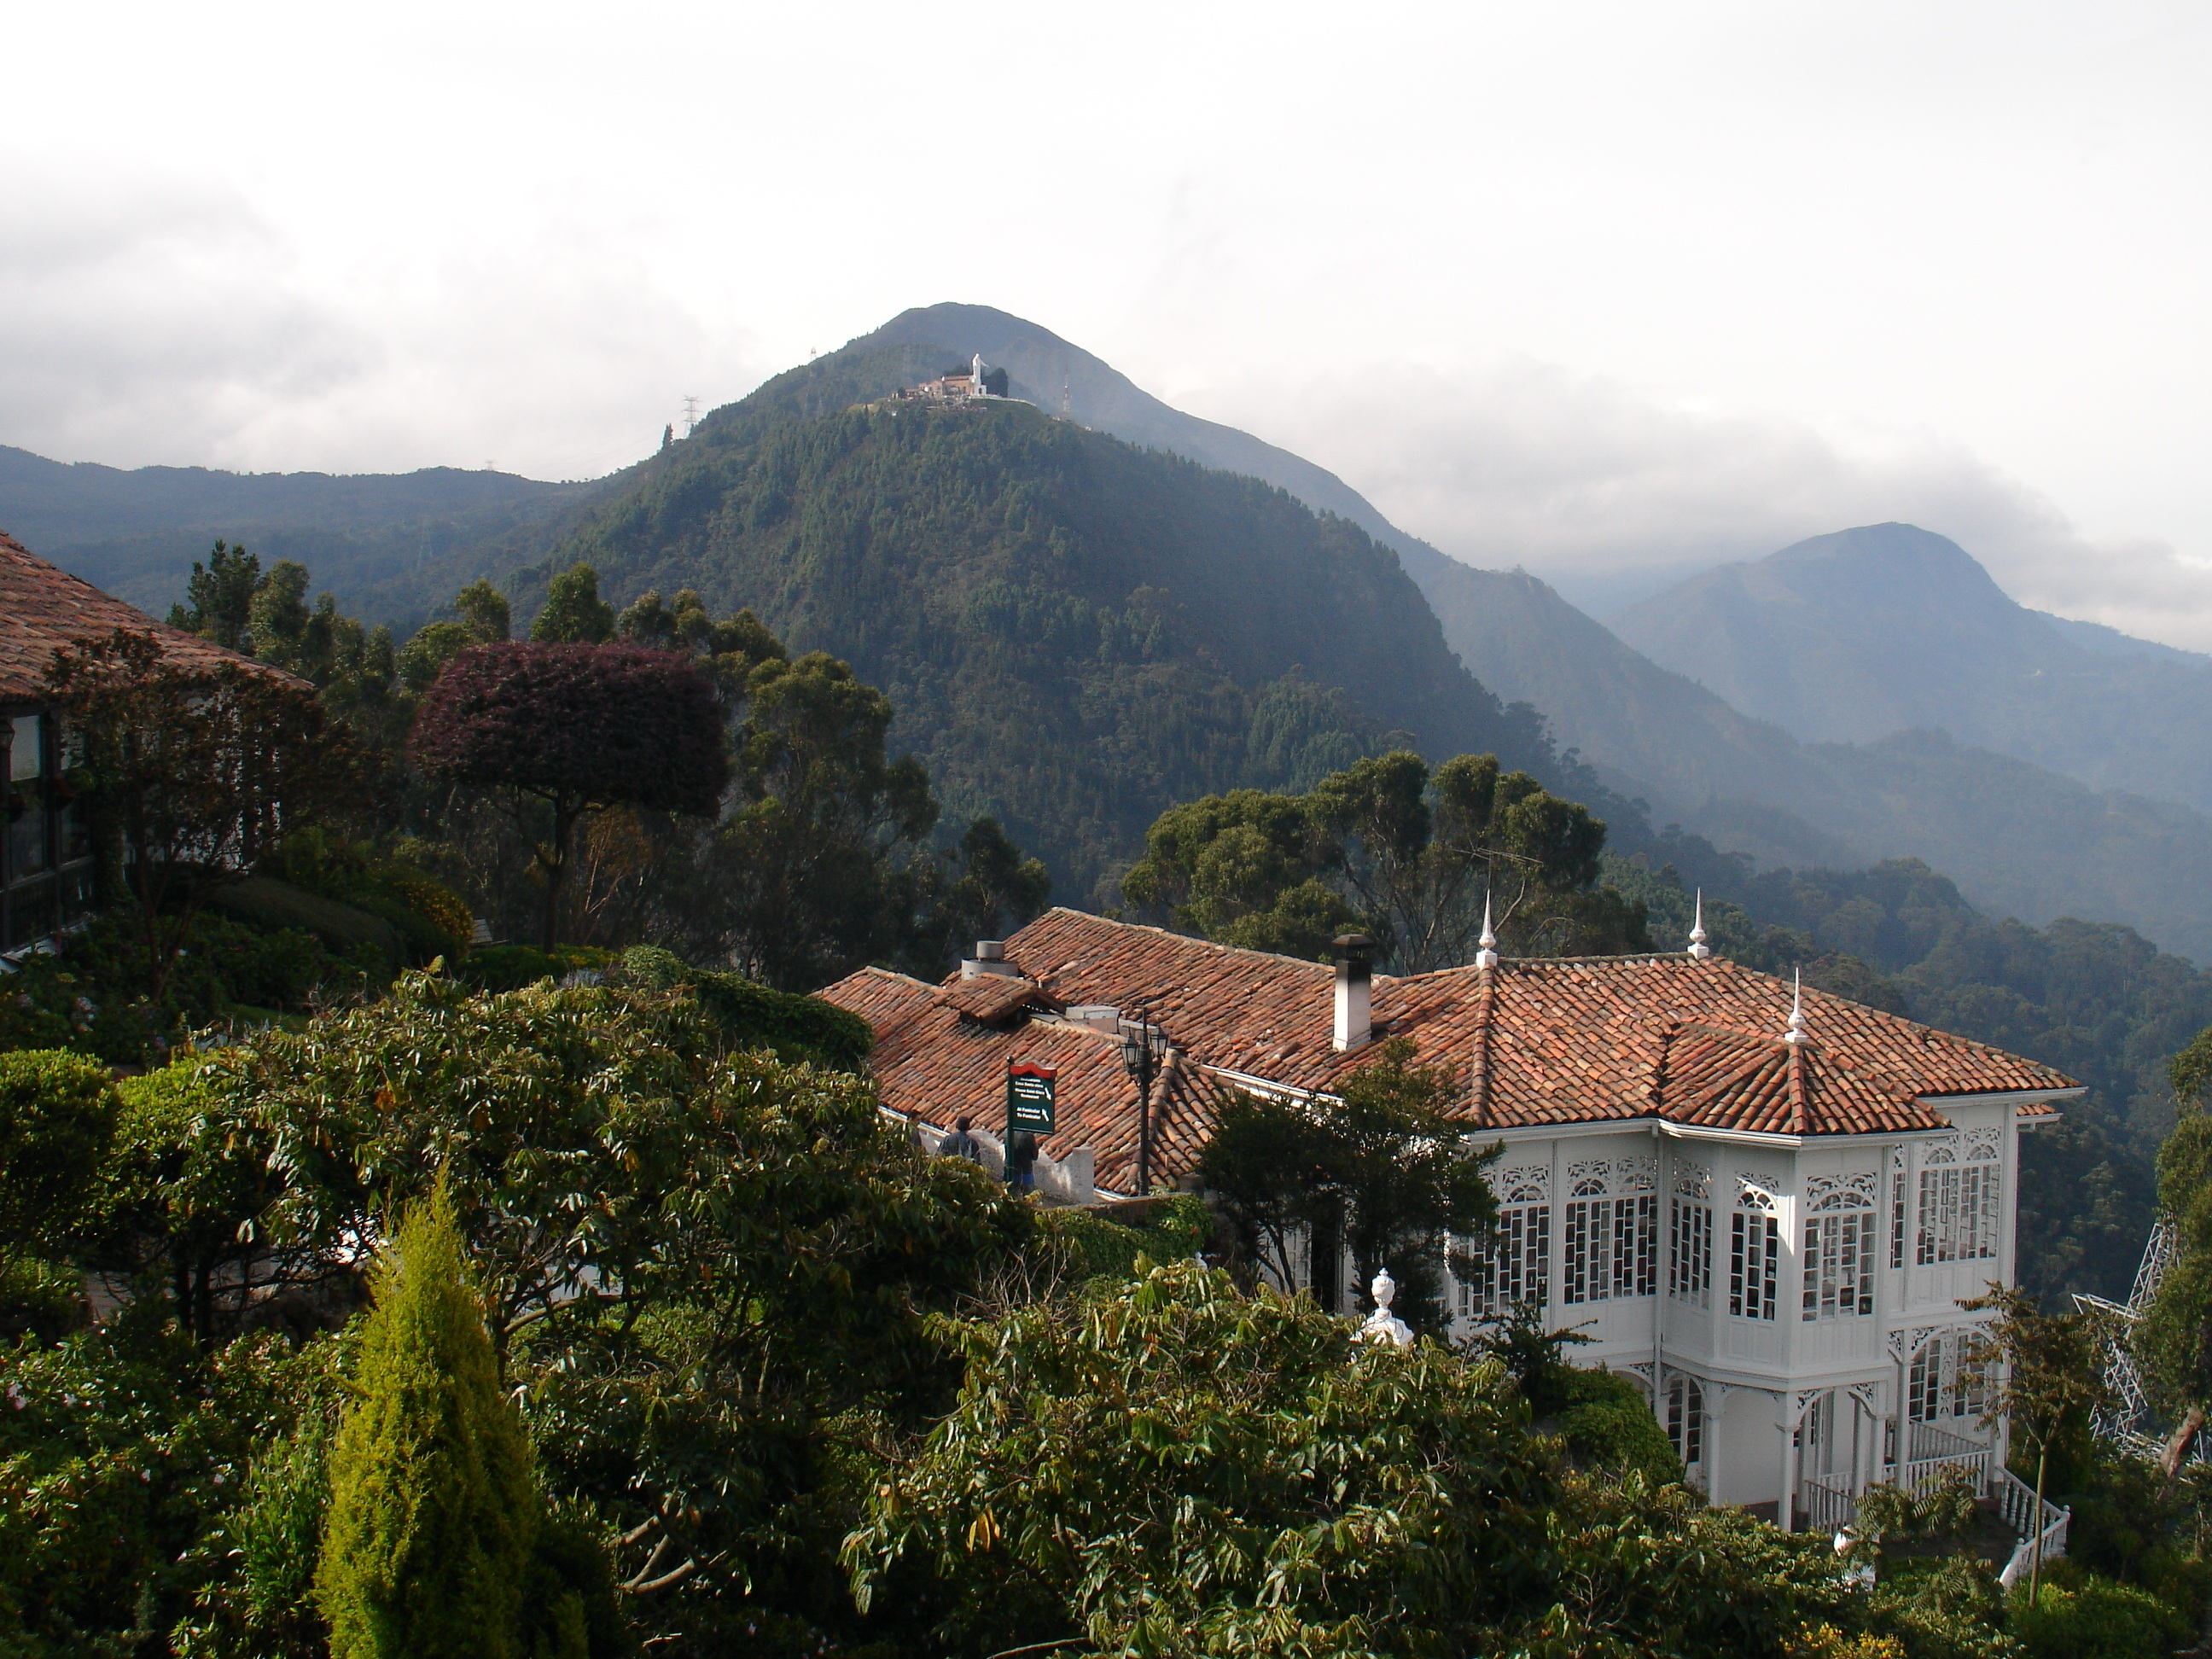 monserrate-973935